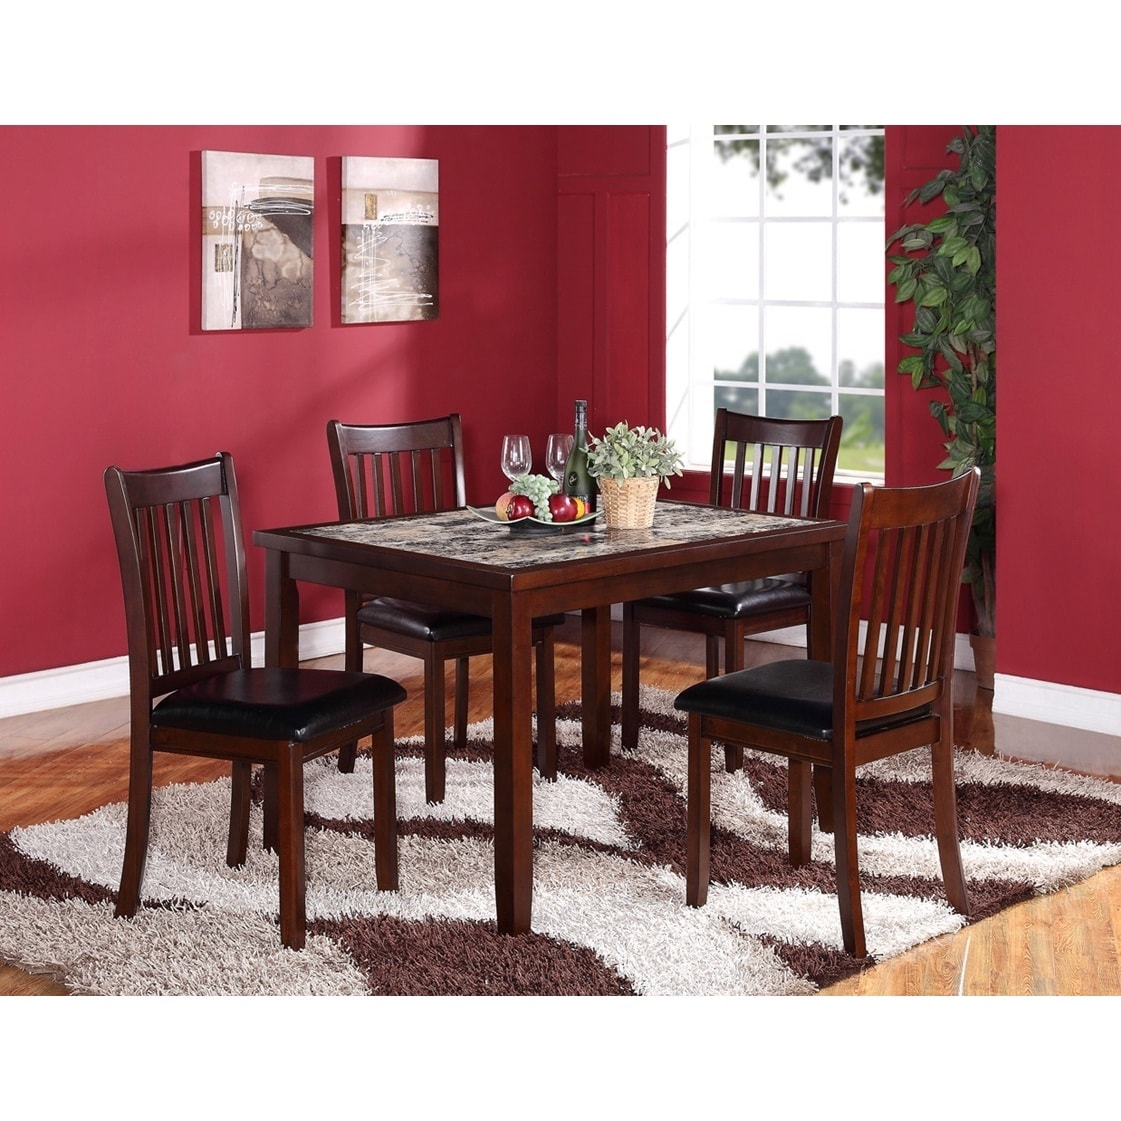 5 Piece Wooden Dining Set in Dark Brown with Artificial M...